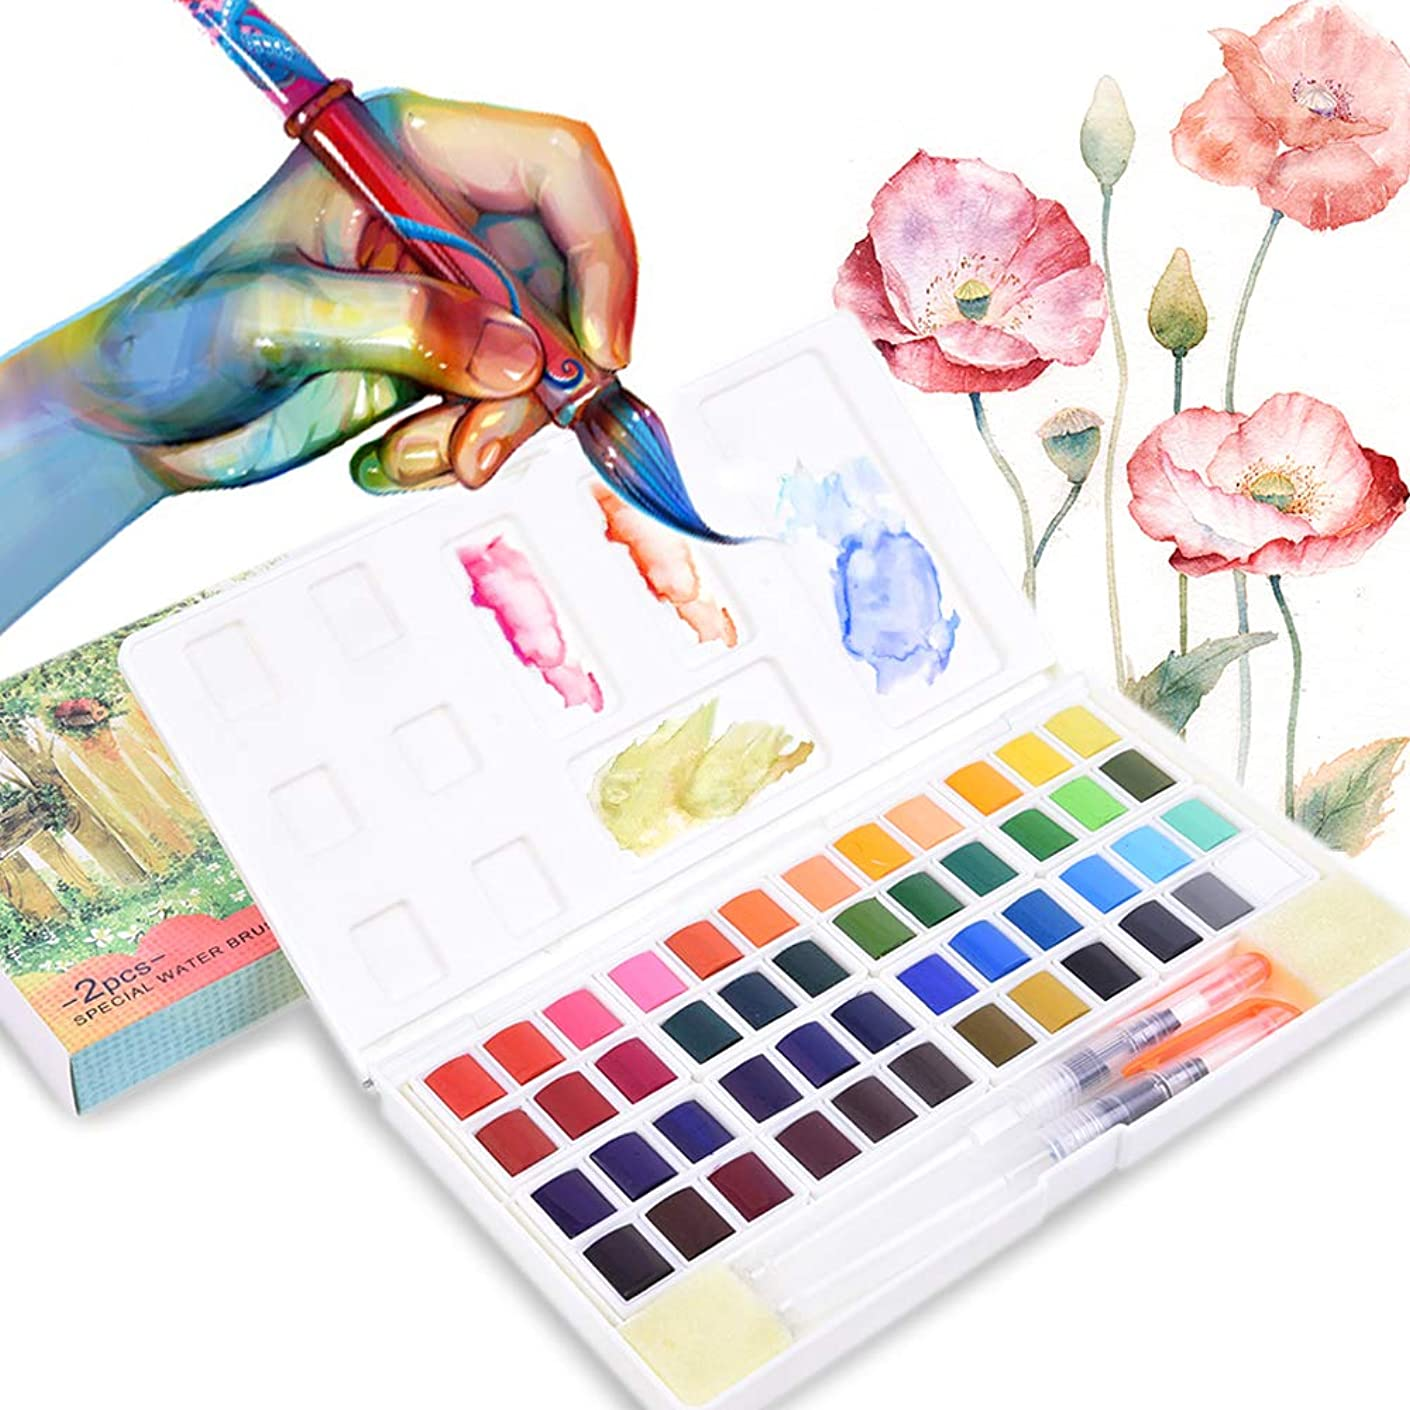 48 Assorted Watercolor Paints Set - Travel Pocket Solid Watercolor Kit with Water Brushes Mixing Palette for Beginners and Artists Journal Sketching Painting Coloring Drawing Art Supplies